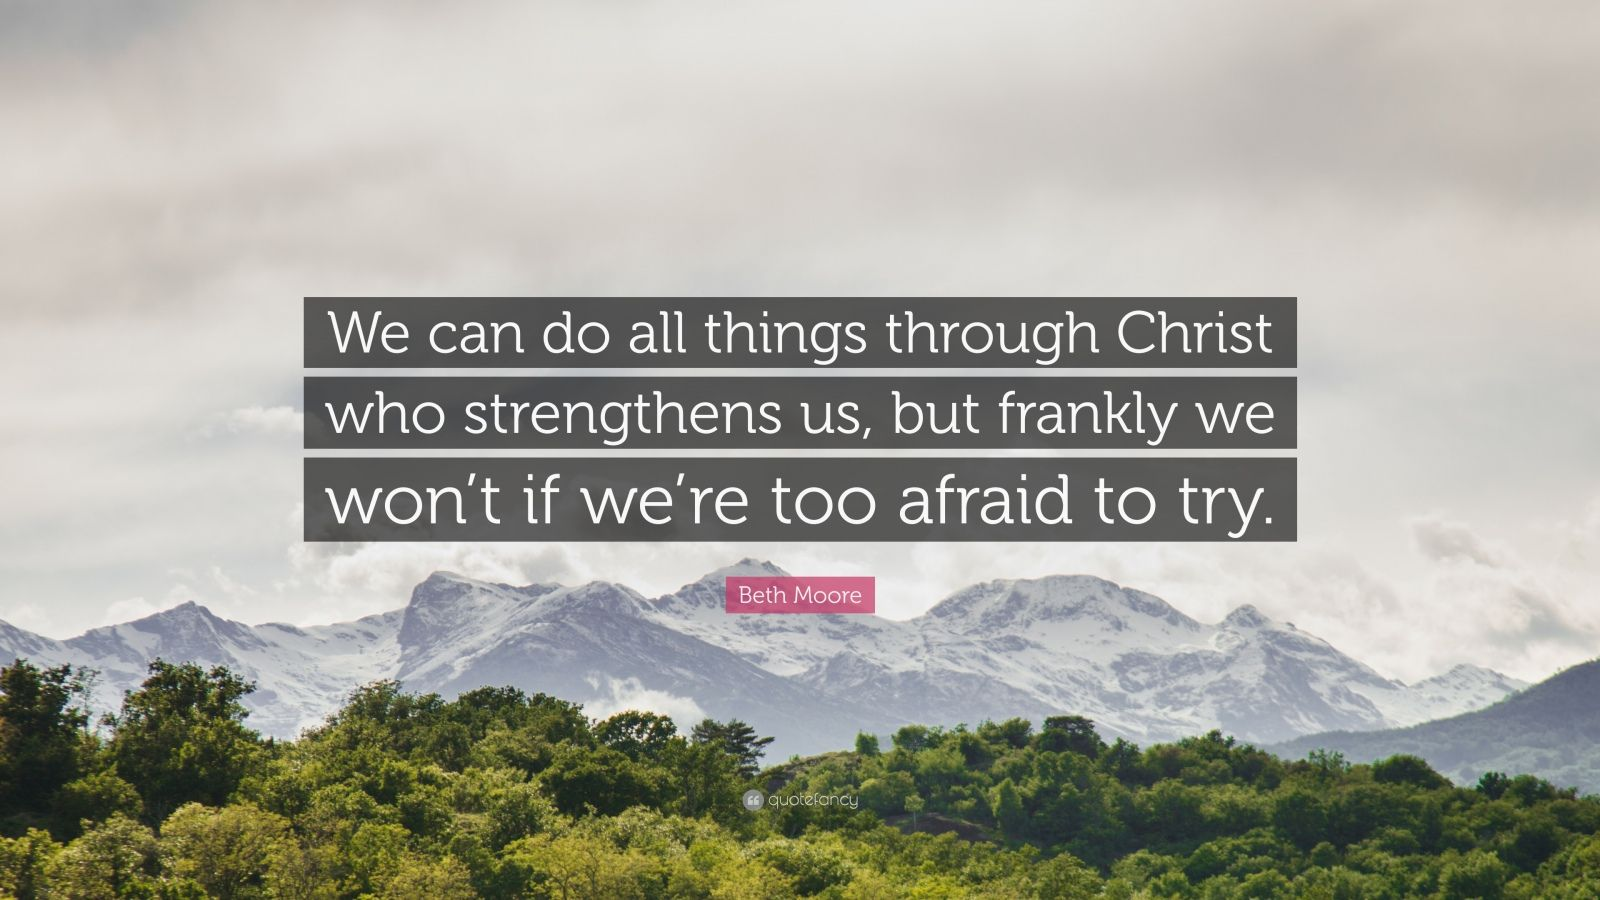 """Beth Moore Quote: """"We can do all things through Christ who strengthens us, but frankly we won't if we're too afraid to try."""""""